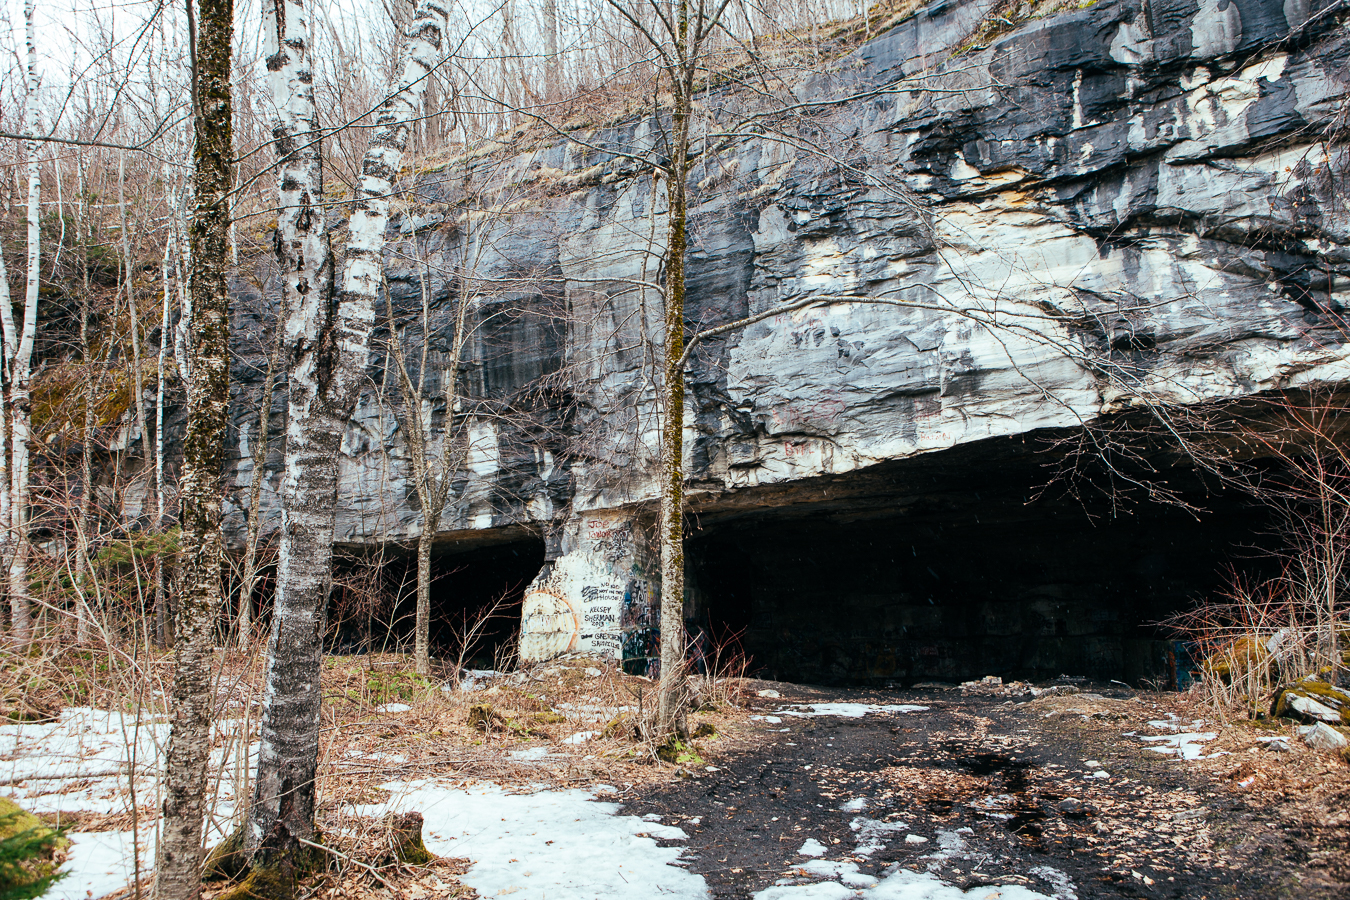 The Freedlyville Quarry was Vermont's 1st marble quarry, now just a hole in the mountain. Walking up to it was real spooky, being it tunneled back a couple hundred feet and was pitch black.